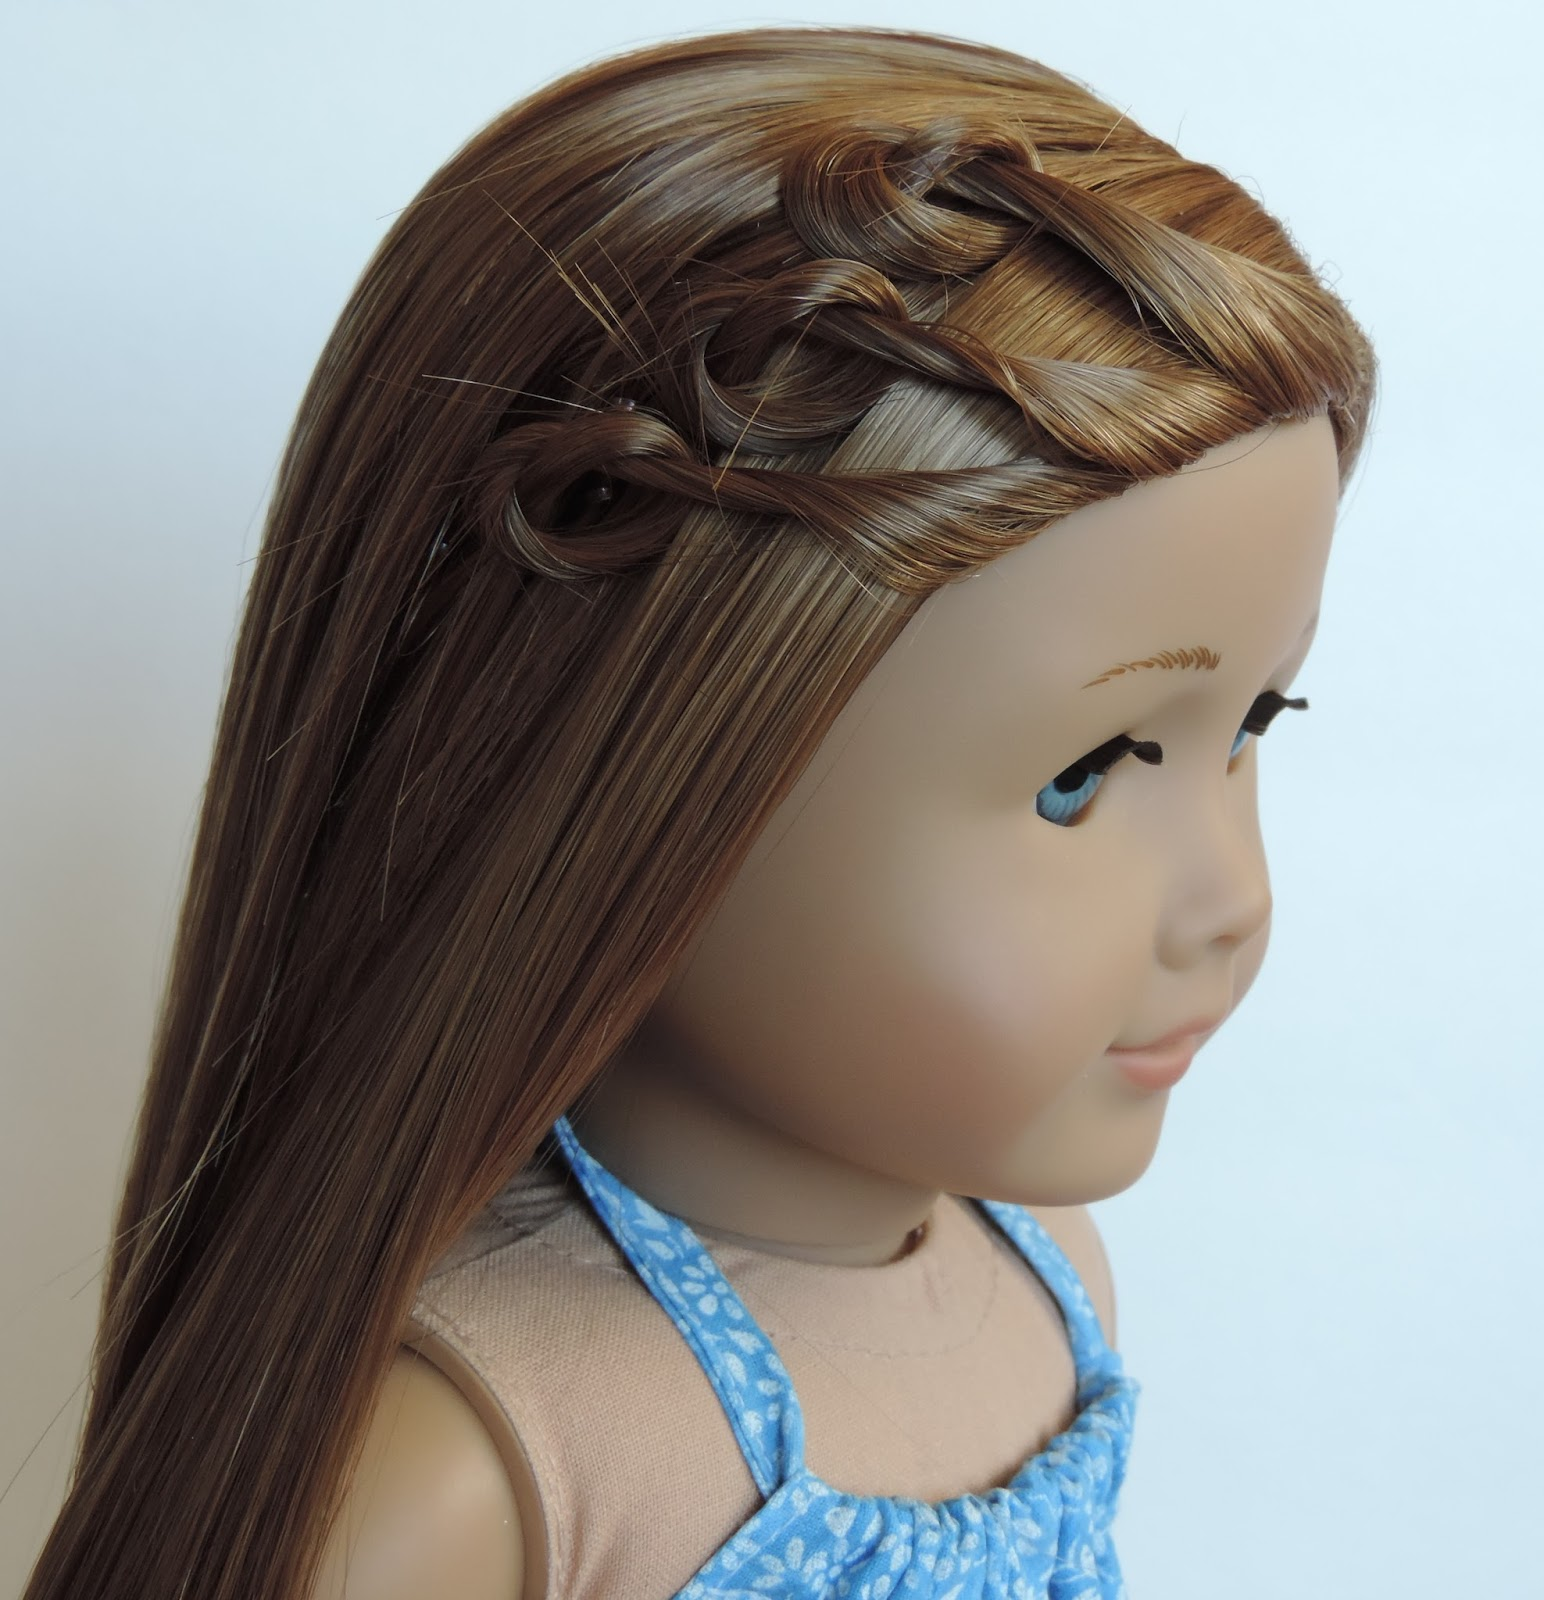 3 Great Doll hairstyles Styles – Get the Look You Want